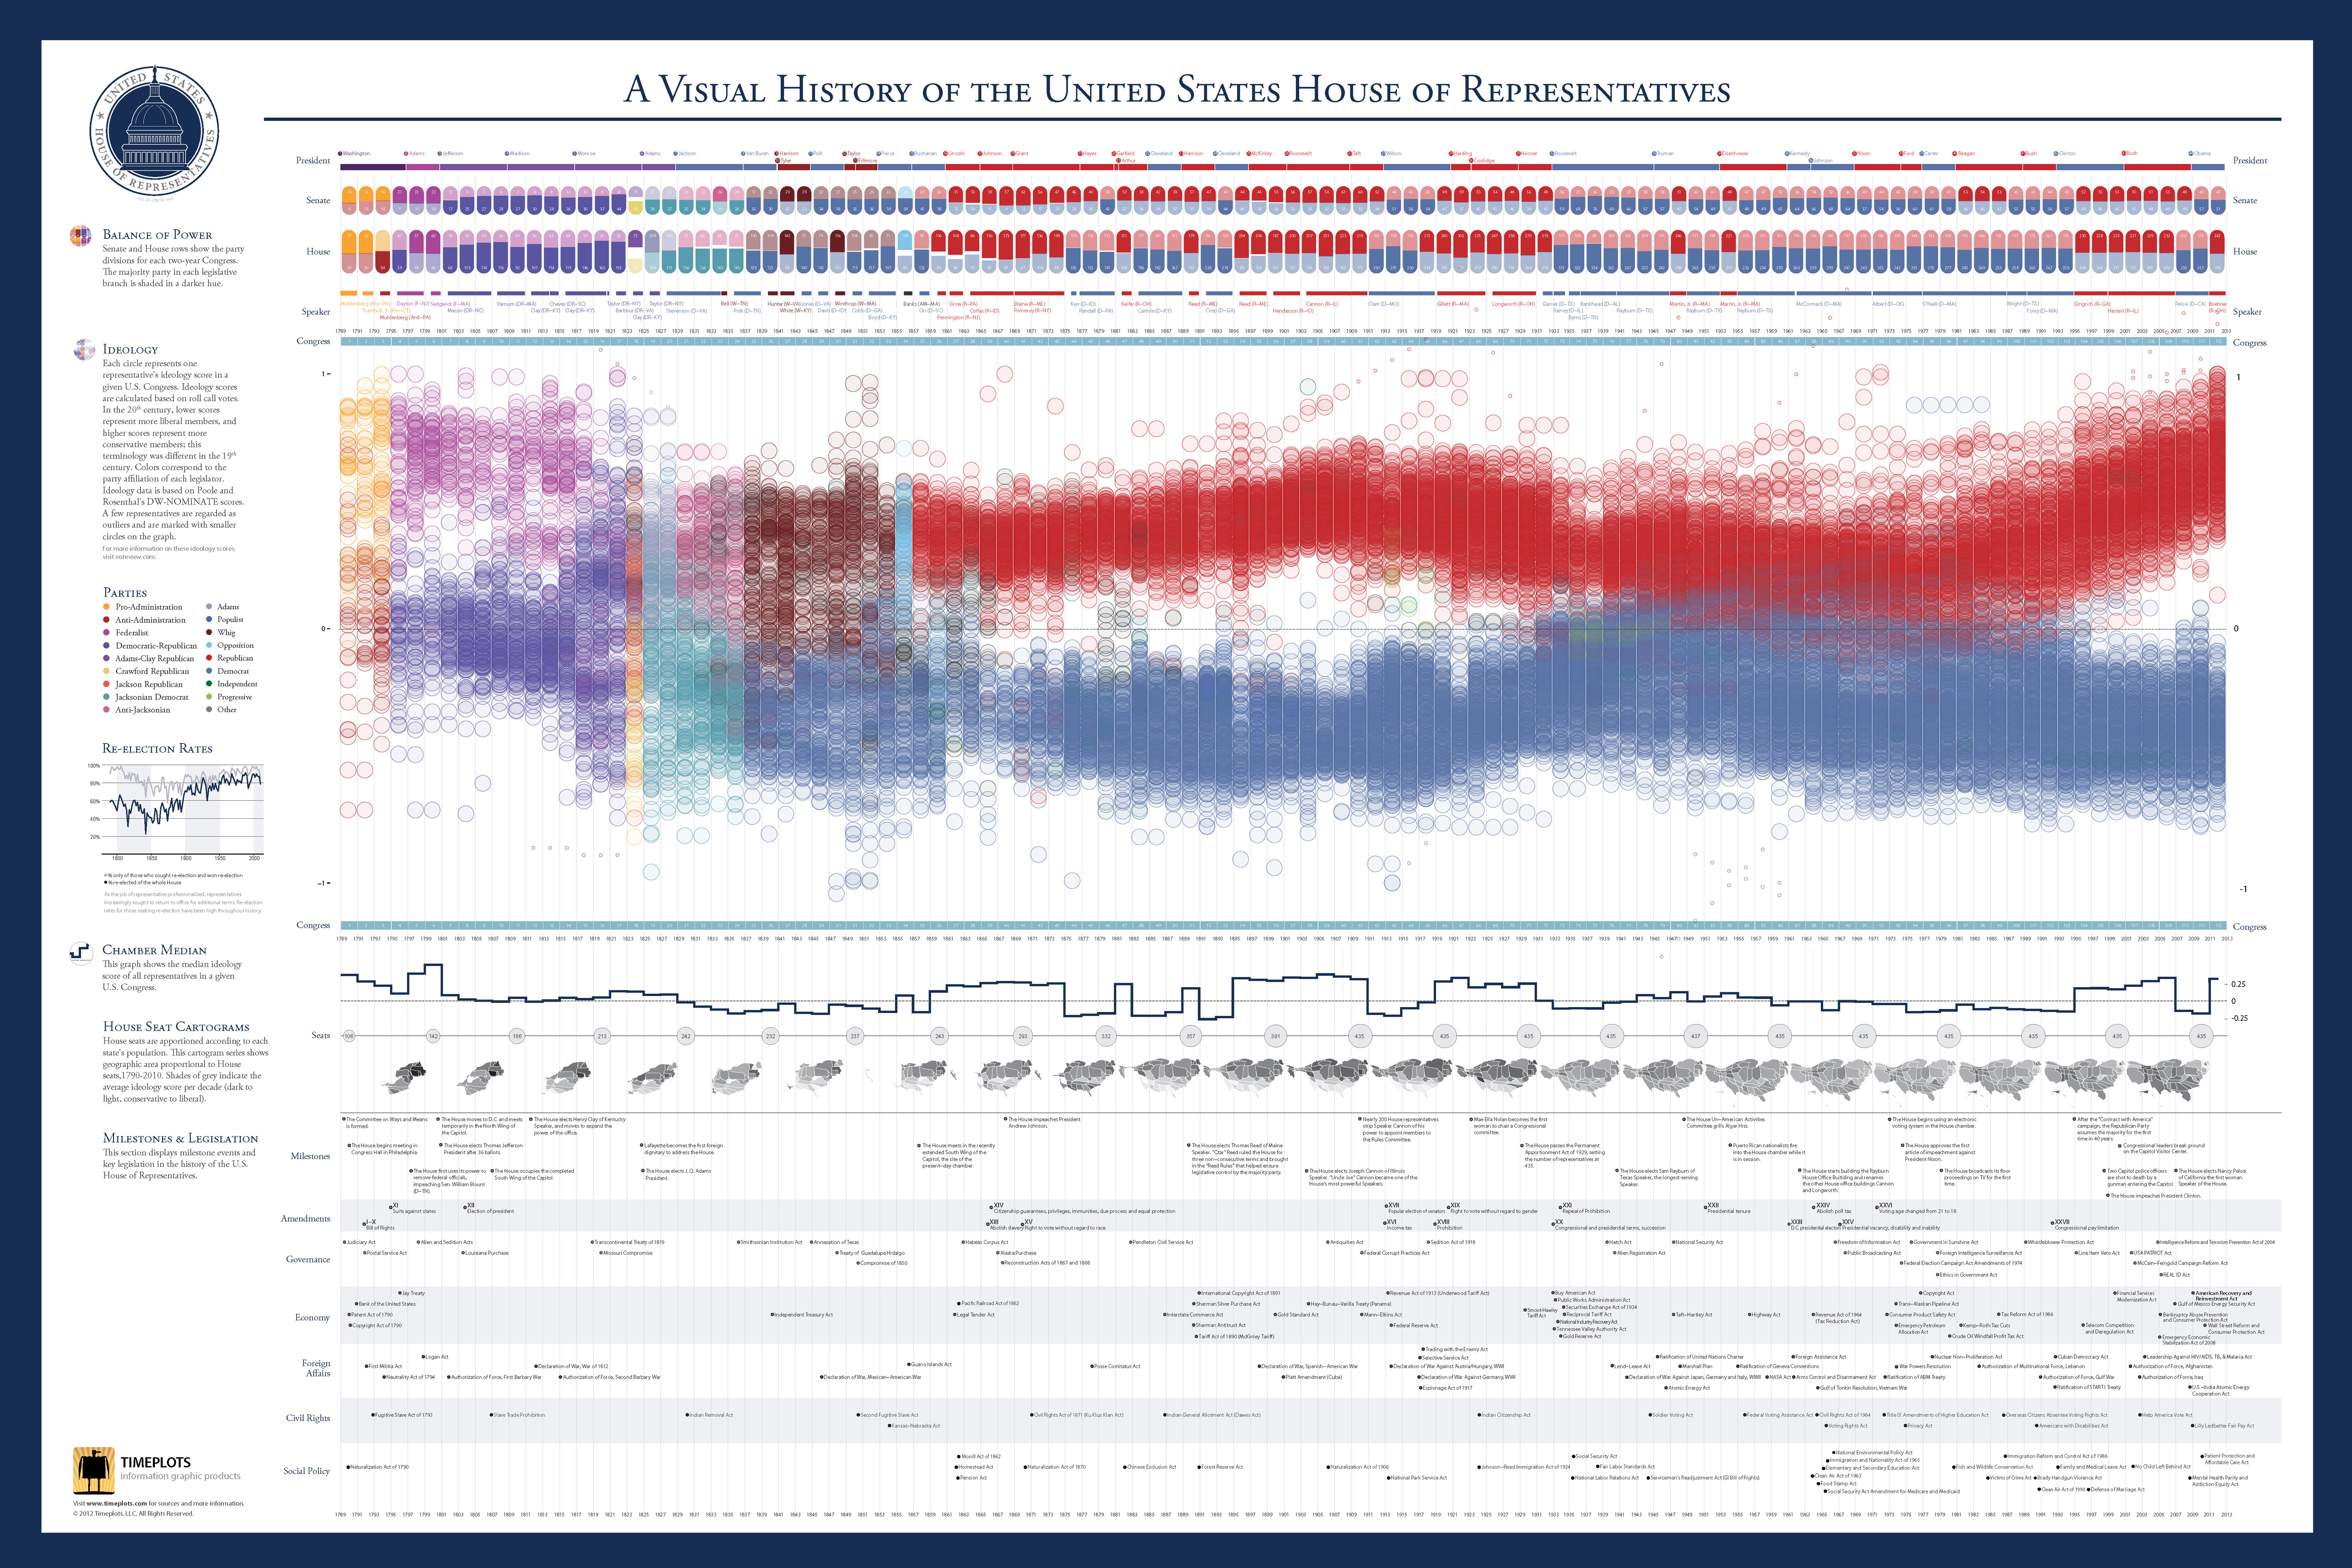 A Visual History Of The United States House Of Representatives By Timeplots